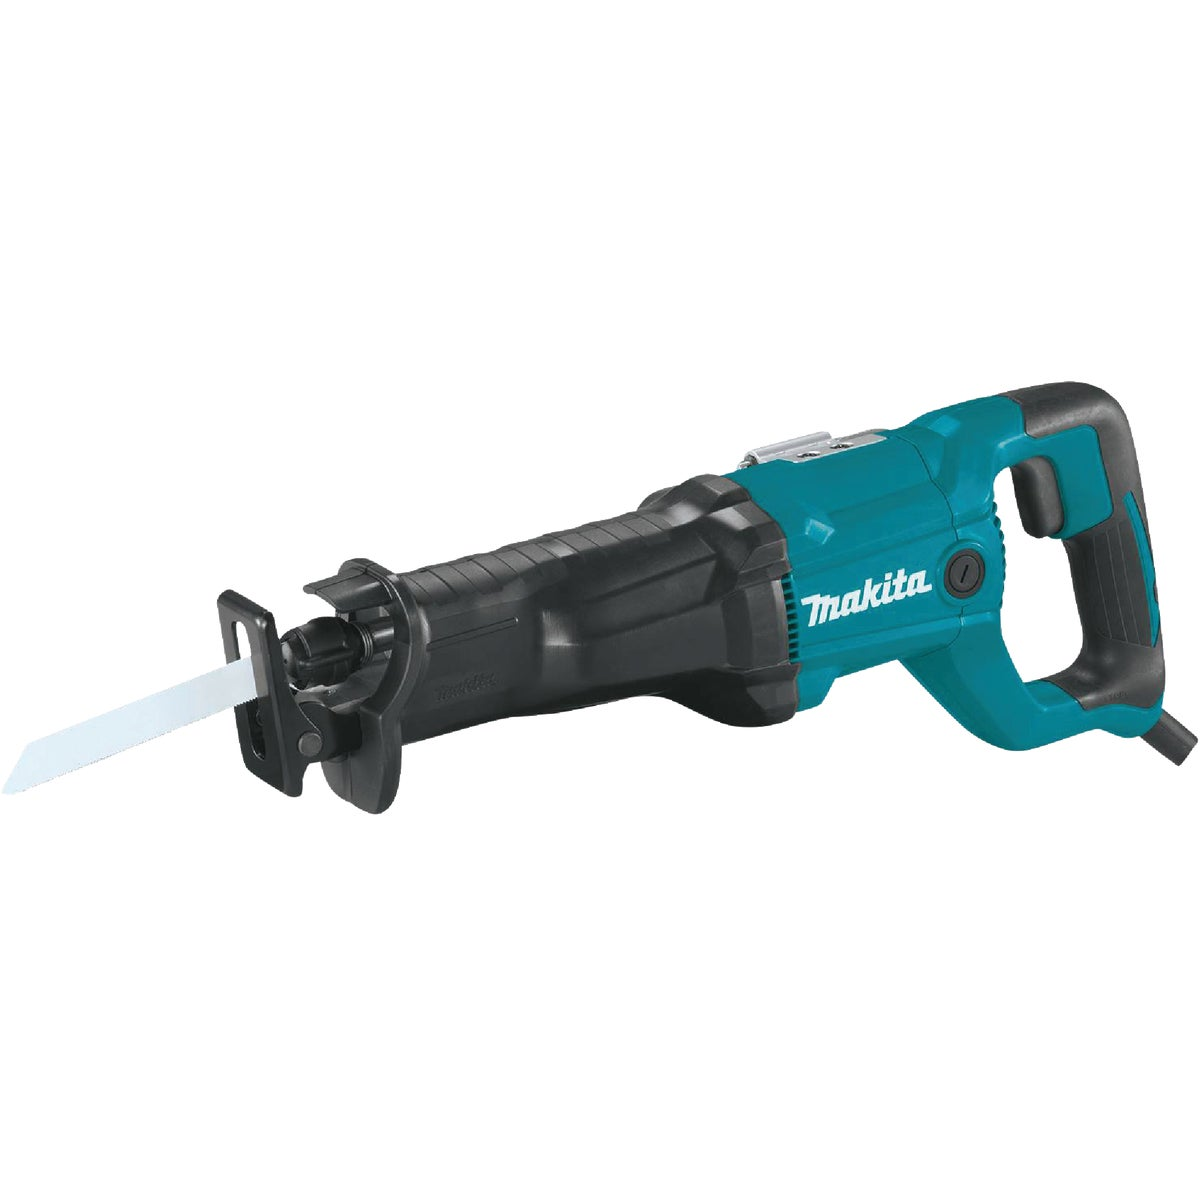 11A RECIPROCATING SAW - JR3050T by Makita Usa Inc